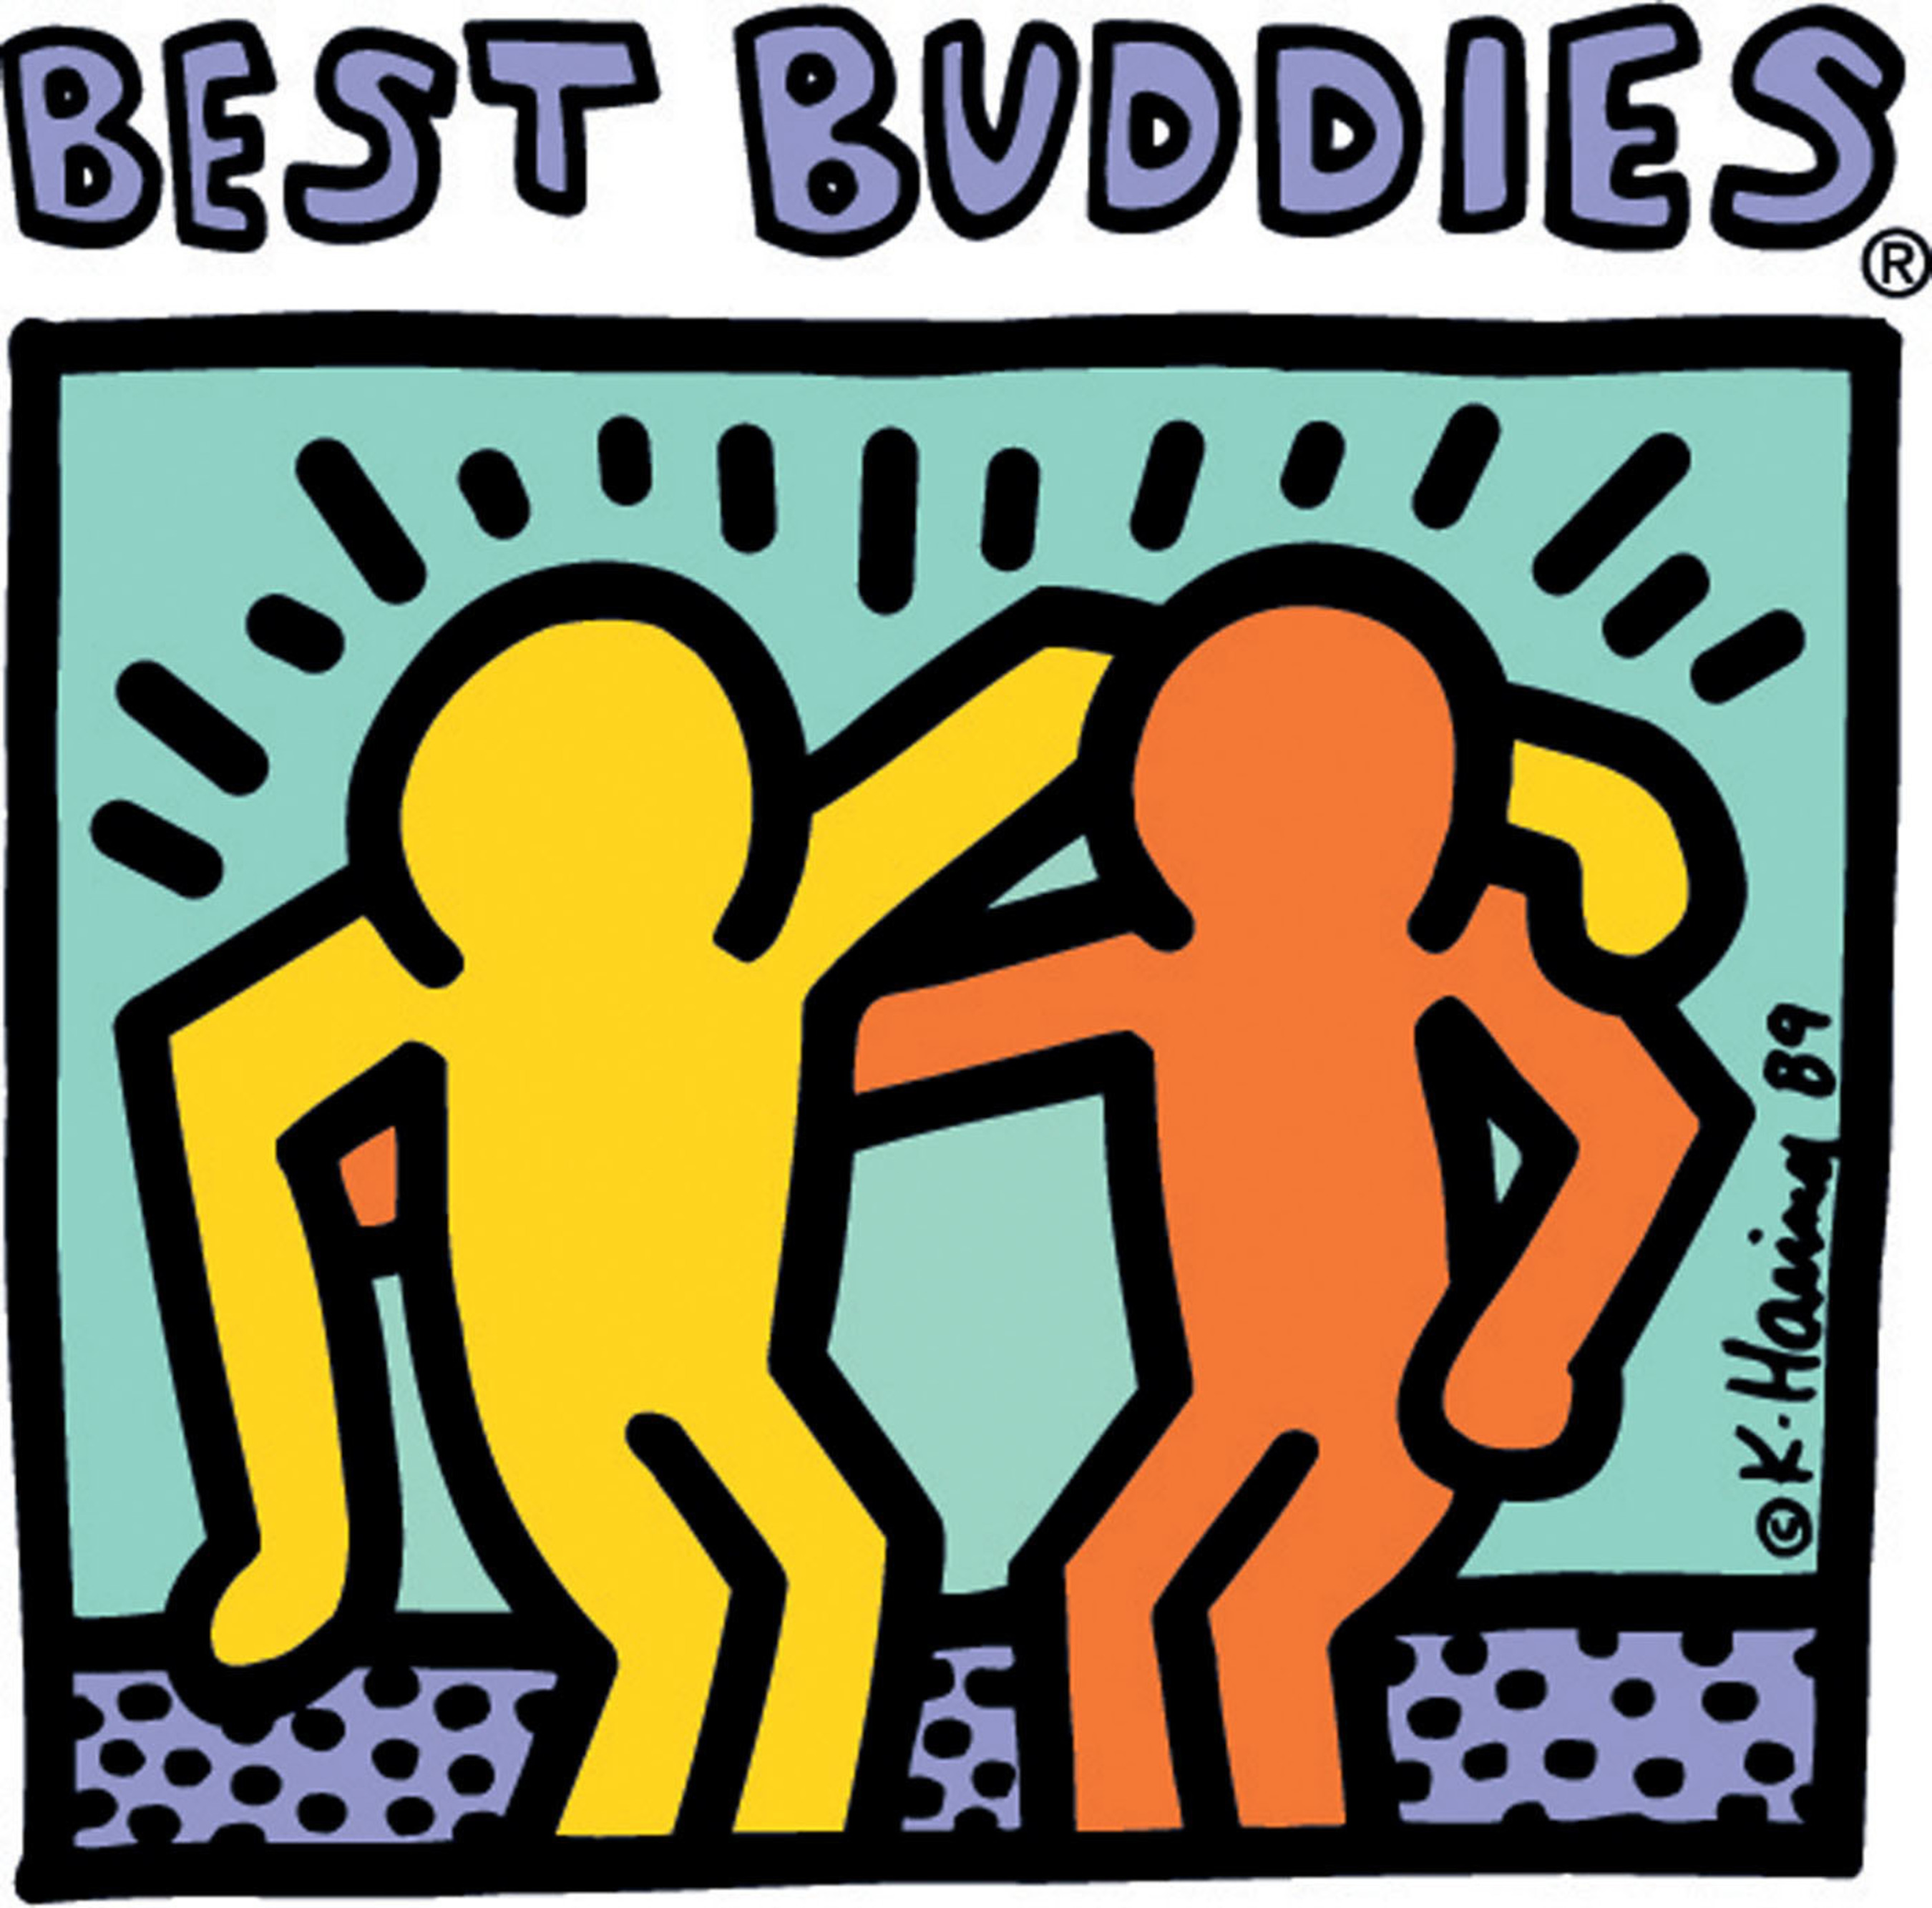 Maria Shriver and Lt. Governor Gavin Newsom to Return as Honorary Co-Chairs of the 12th Annual Best Buddies Challenge: Hearst Castle